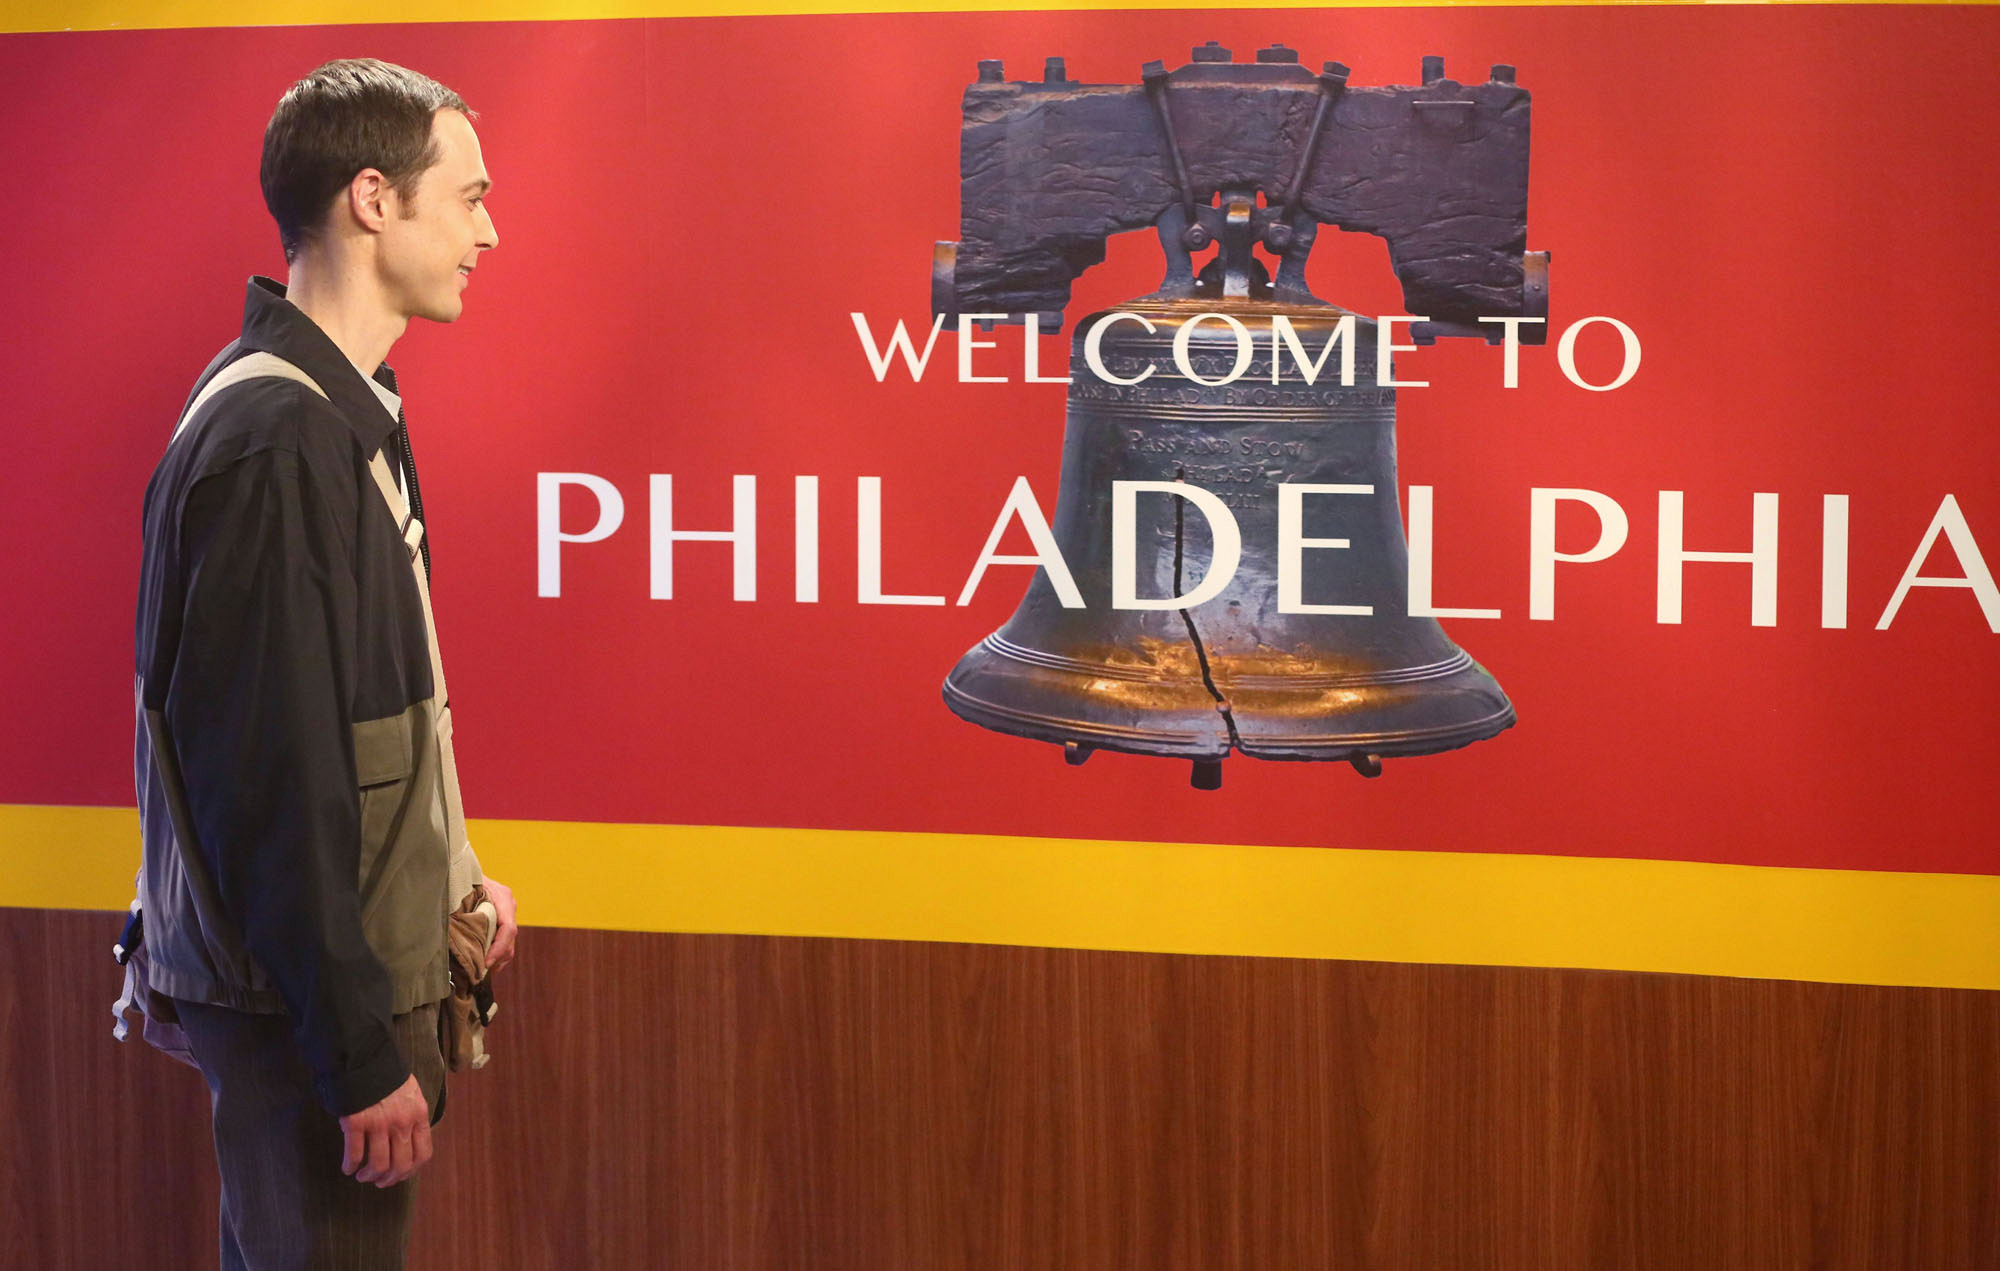 Sheldon visits the Philadelphia train station